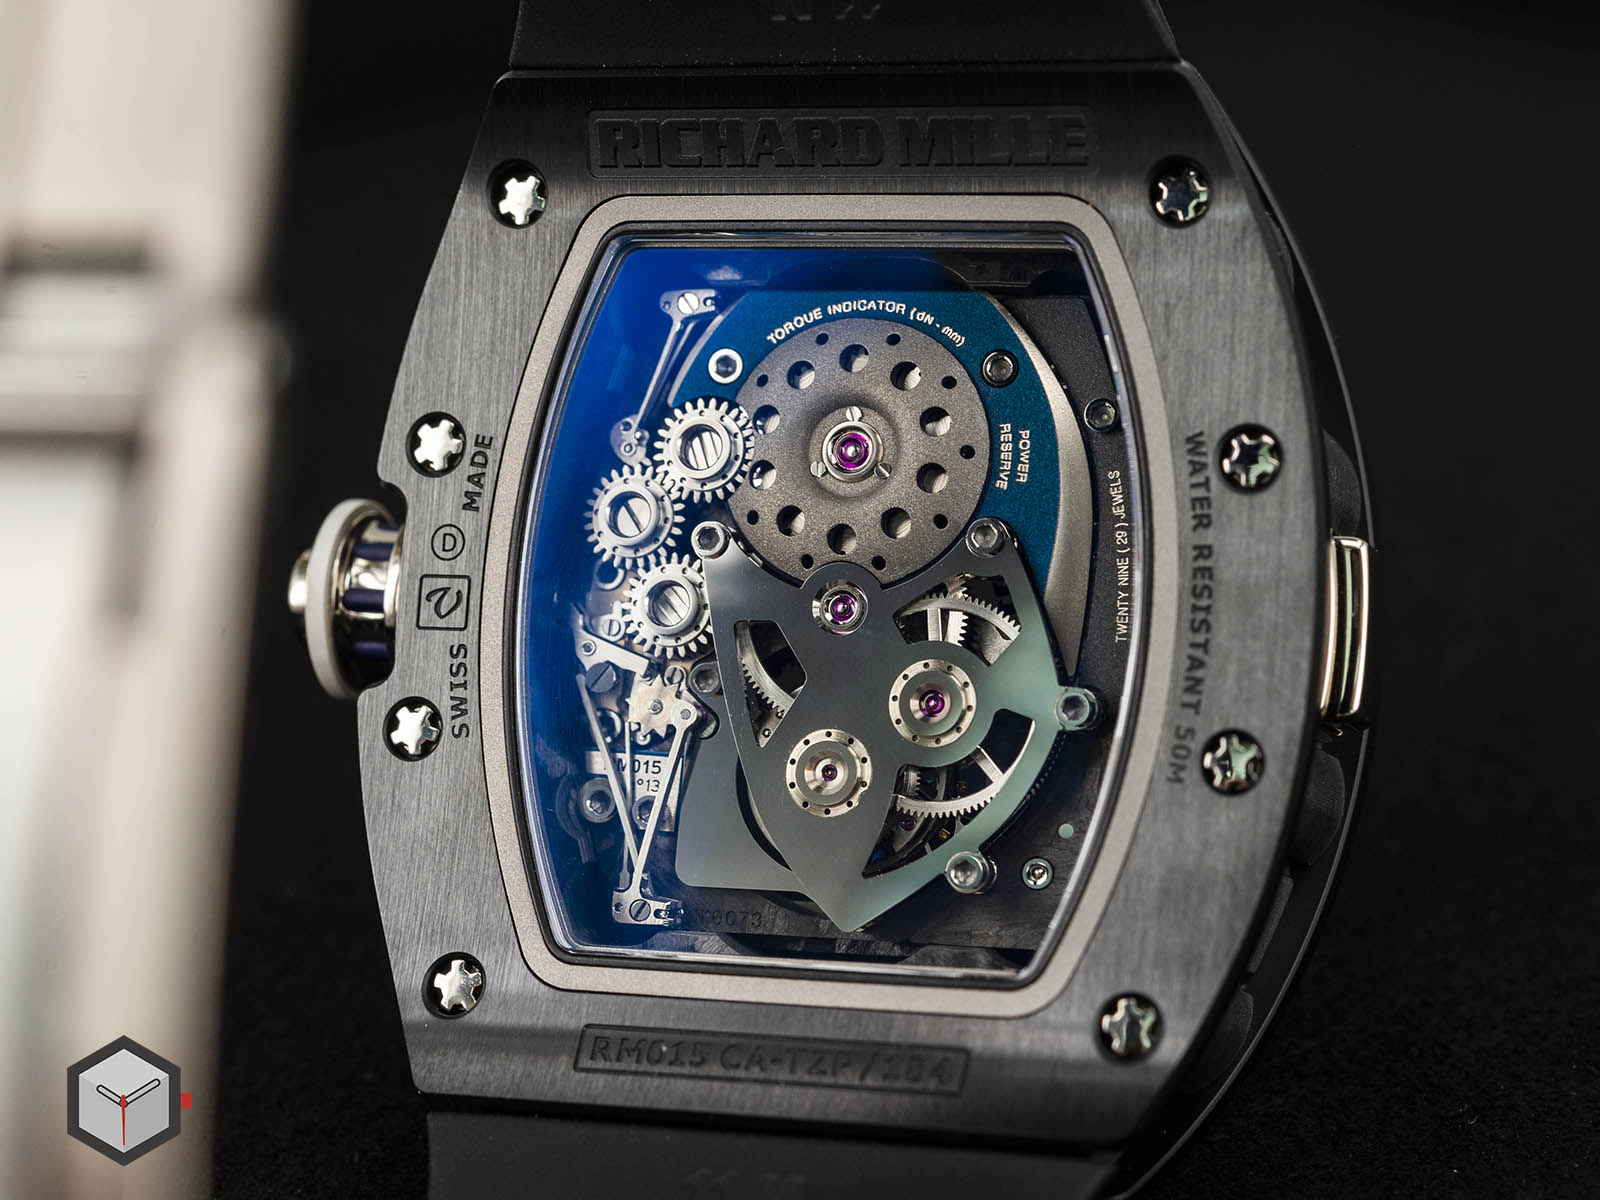 richard-mille-rm015-tourbillon-dual-time-zone-perini-navi-cup-9.jpg